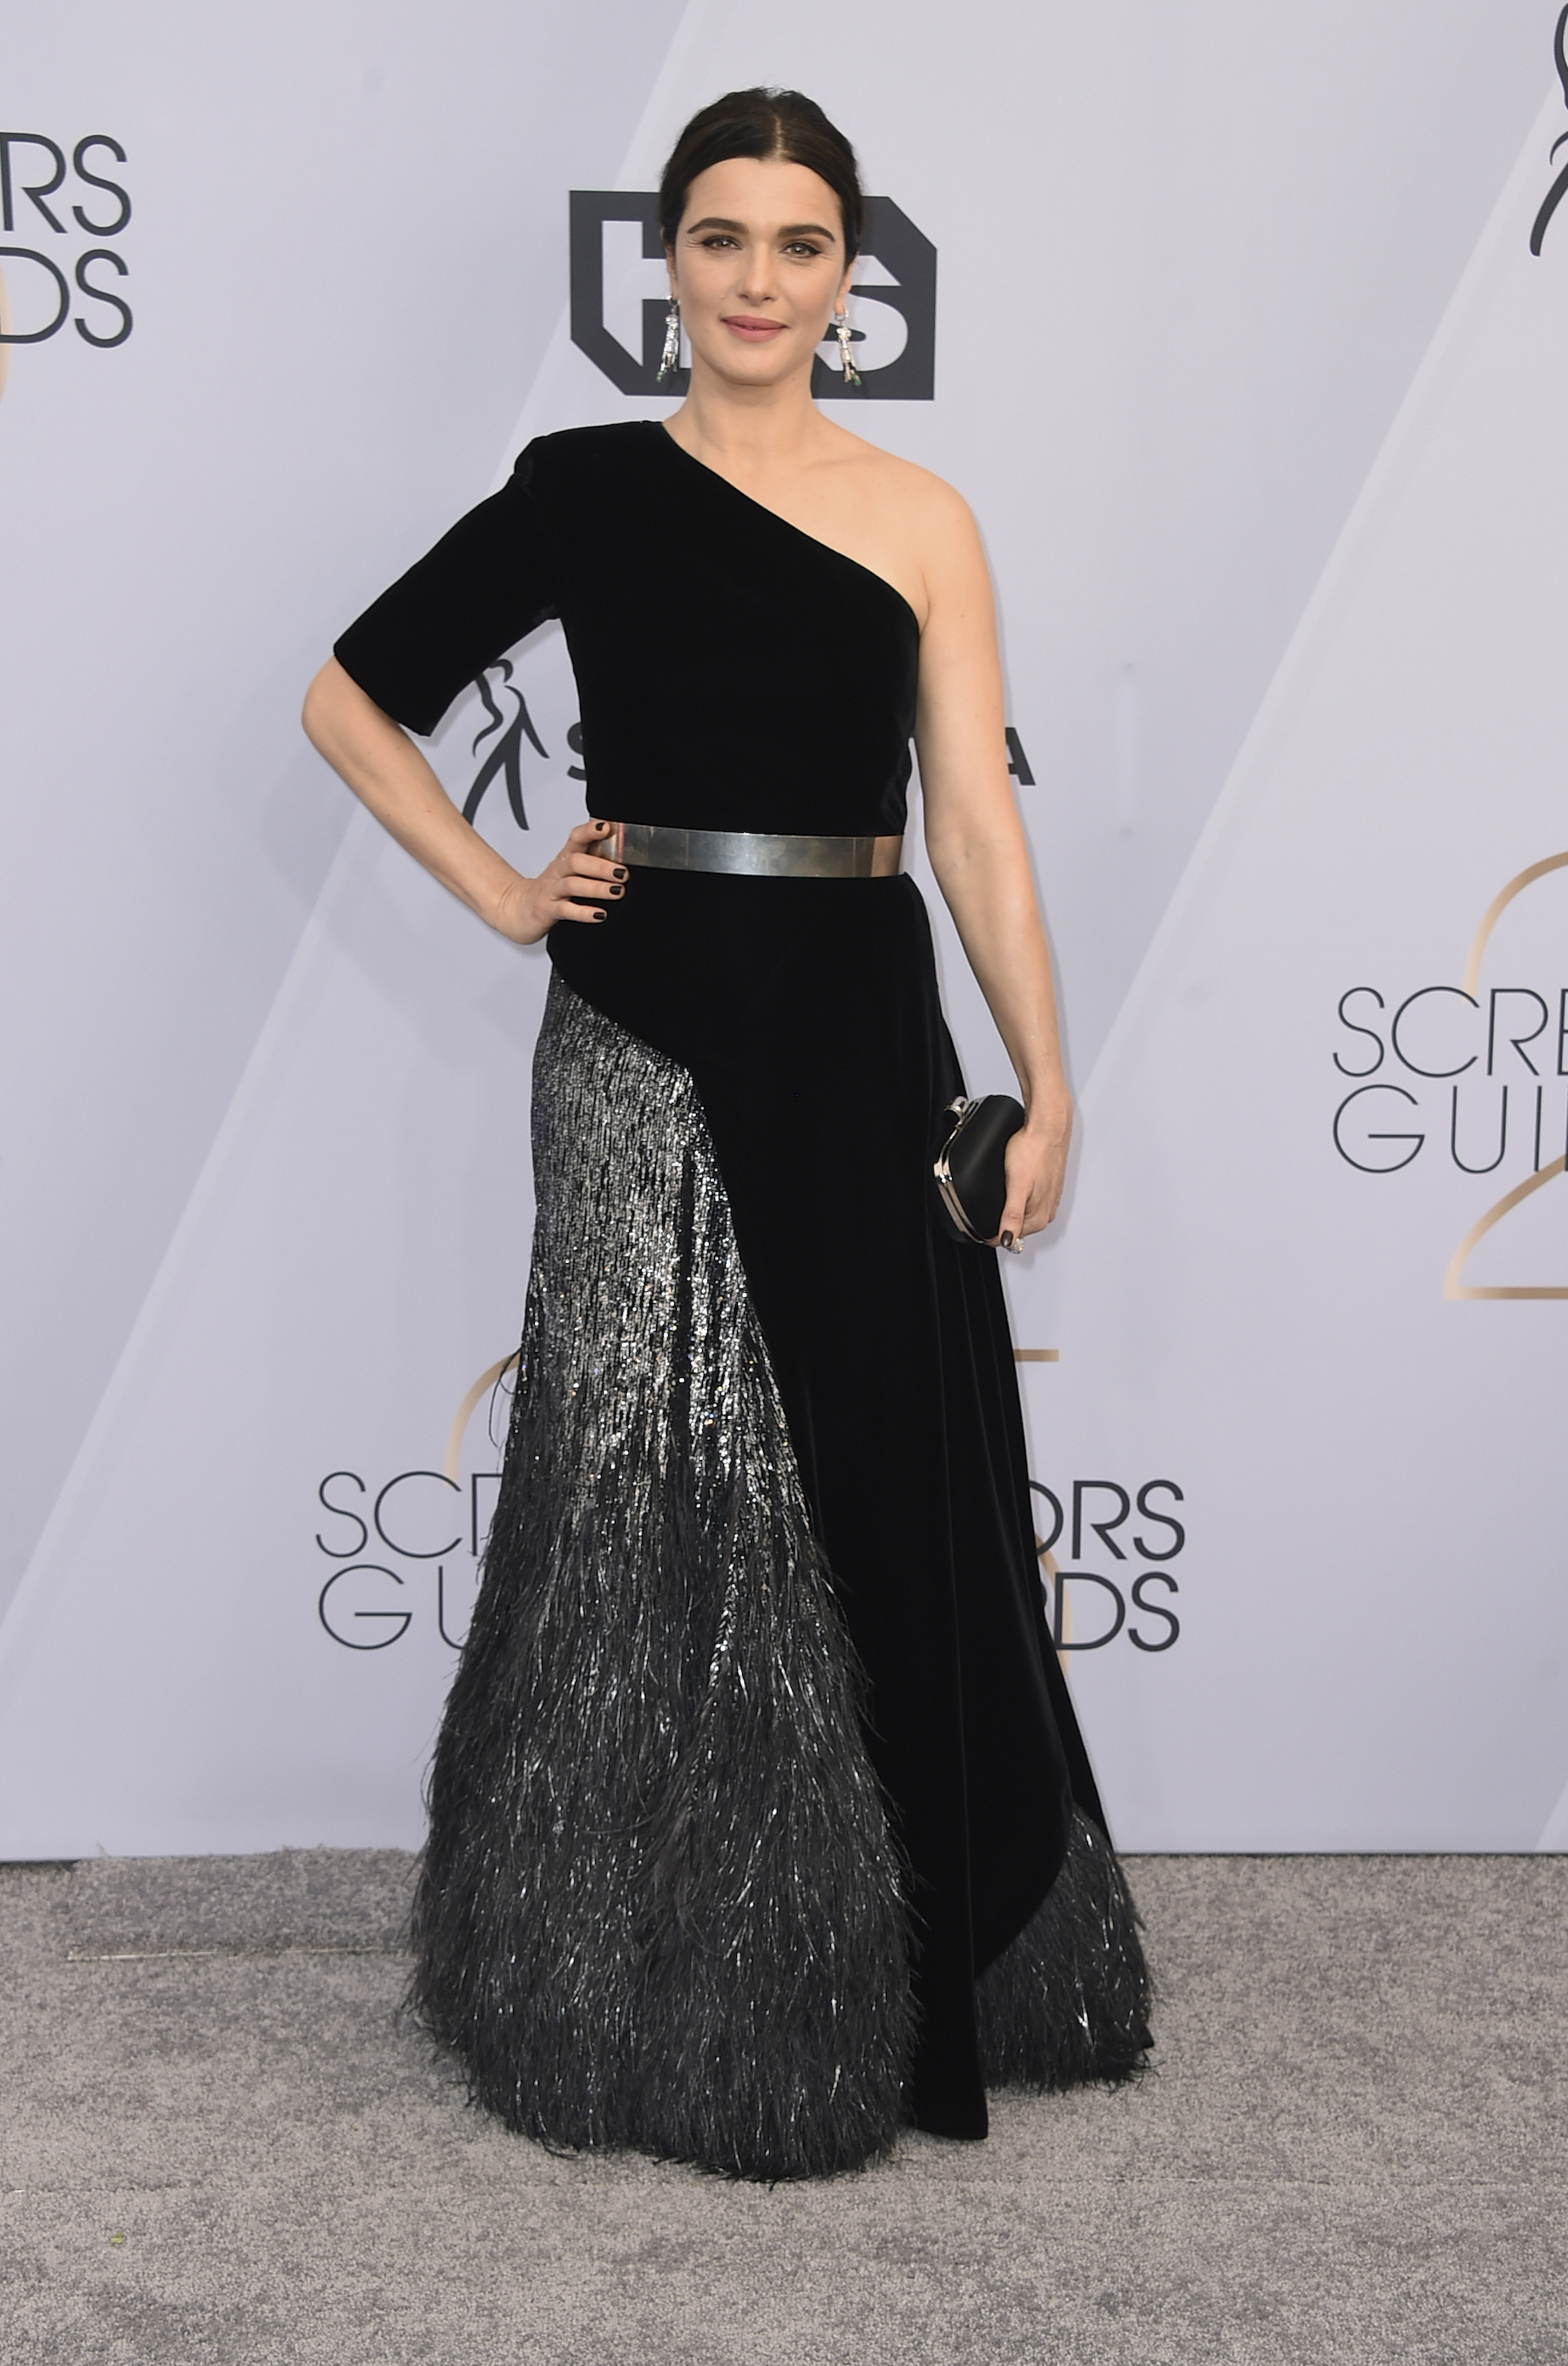 "<div class=""meta image-caption""><div class=""origin-logo origin-image ap""><span>AP</span></div><span class=""caption-text"">Rachel Weisz arrives at the 25th annual Screen Actors Guild Awards at the Shrine Auditorium & Expo Hall on Sunday, Jan. 27, 2019, in Los Angeles. (Jordan Strauss/Invision/AP)</span></div>"